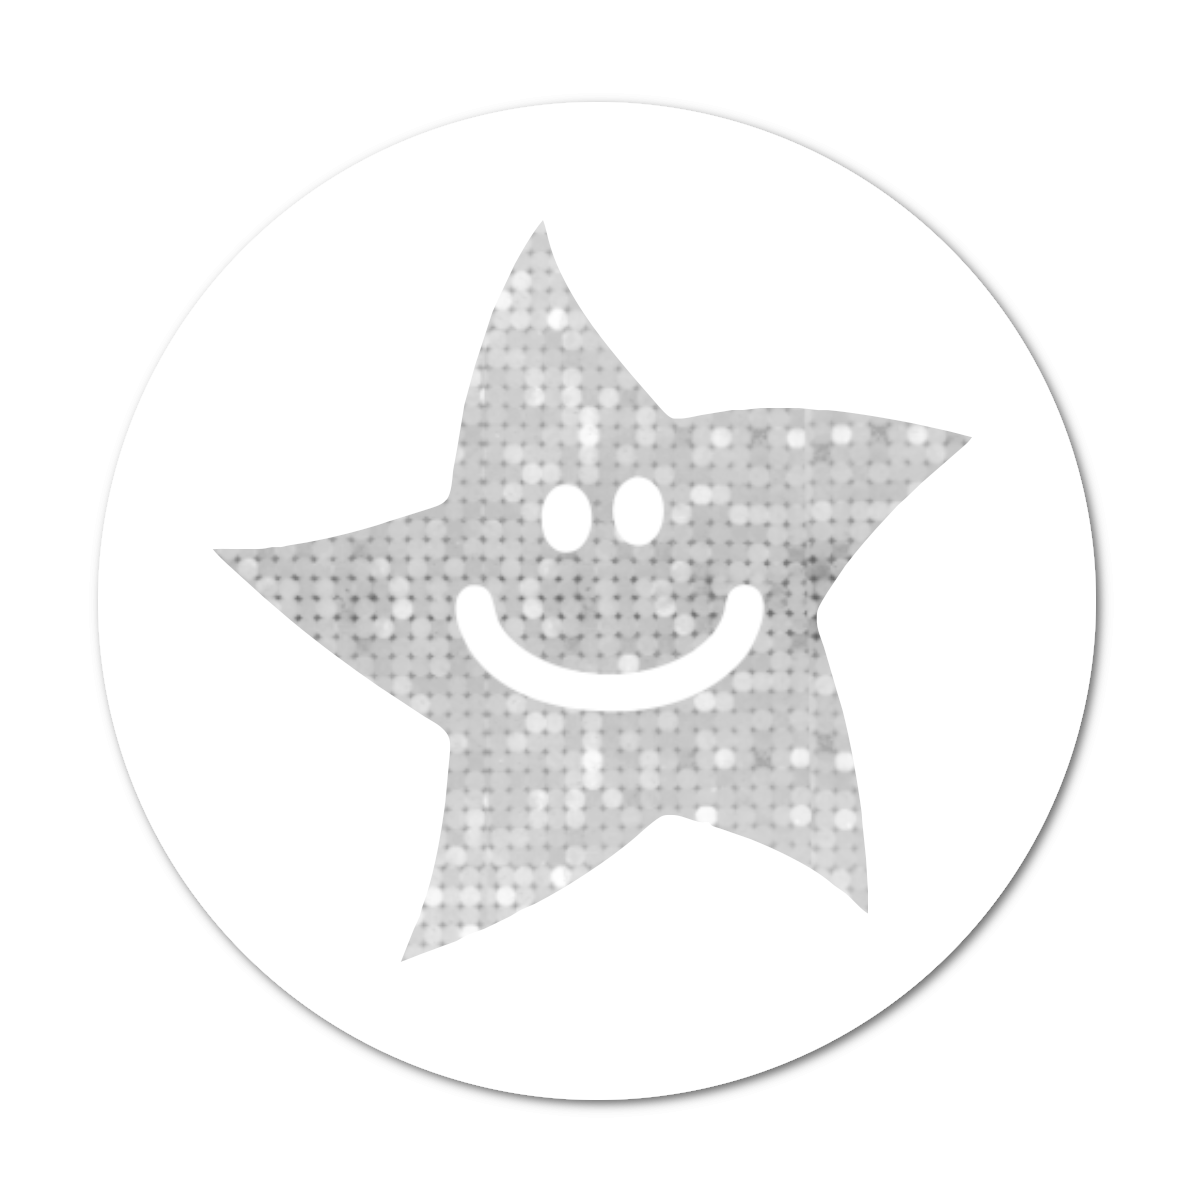 24mm Silver Sparkly Star Stickers